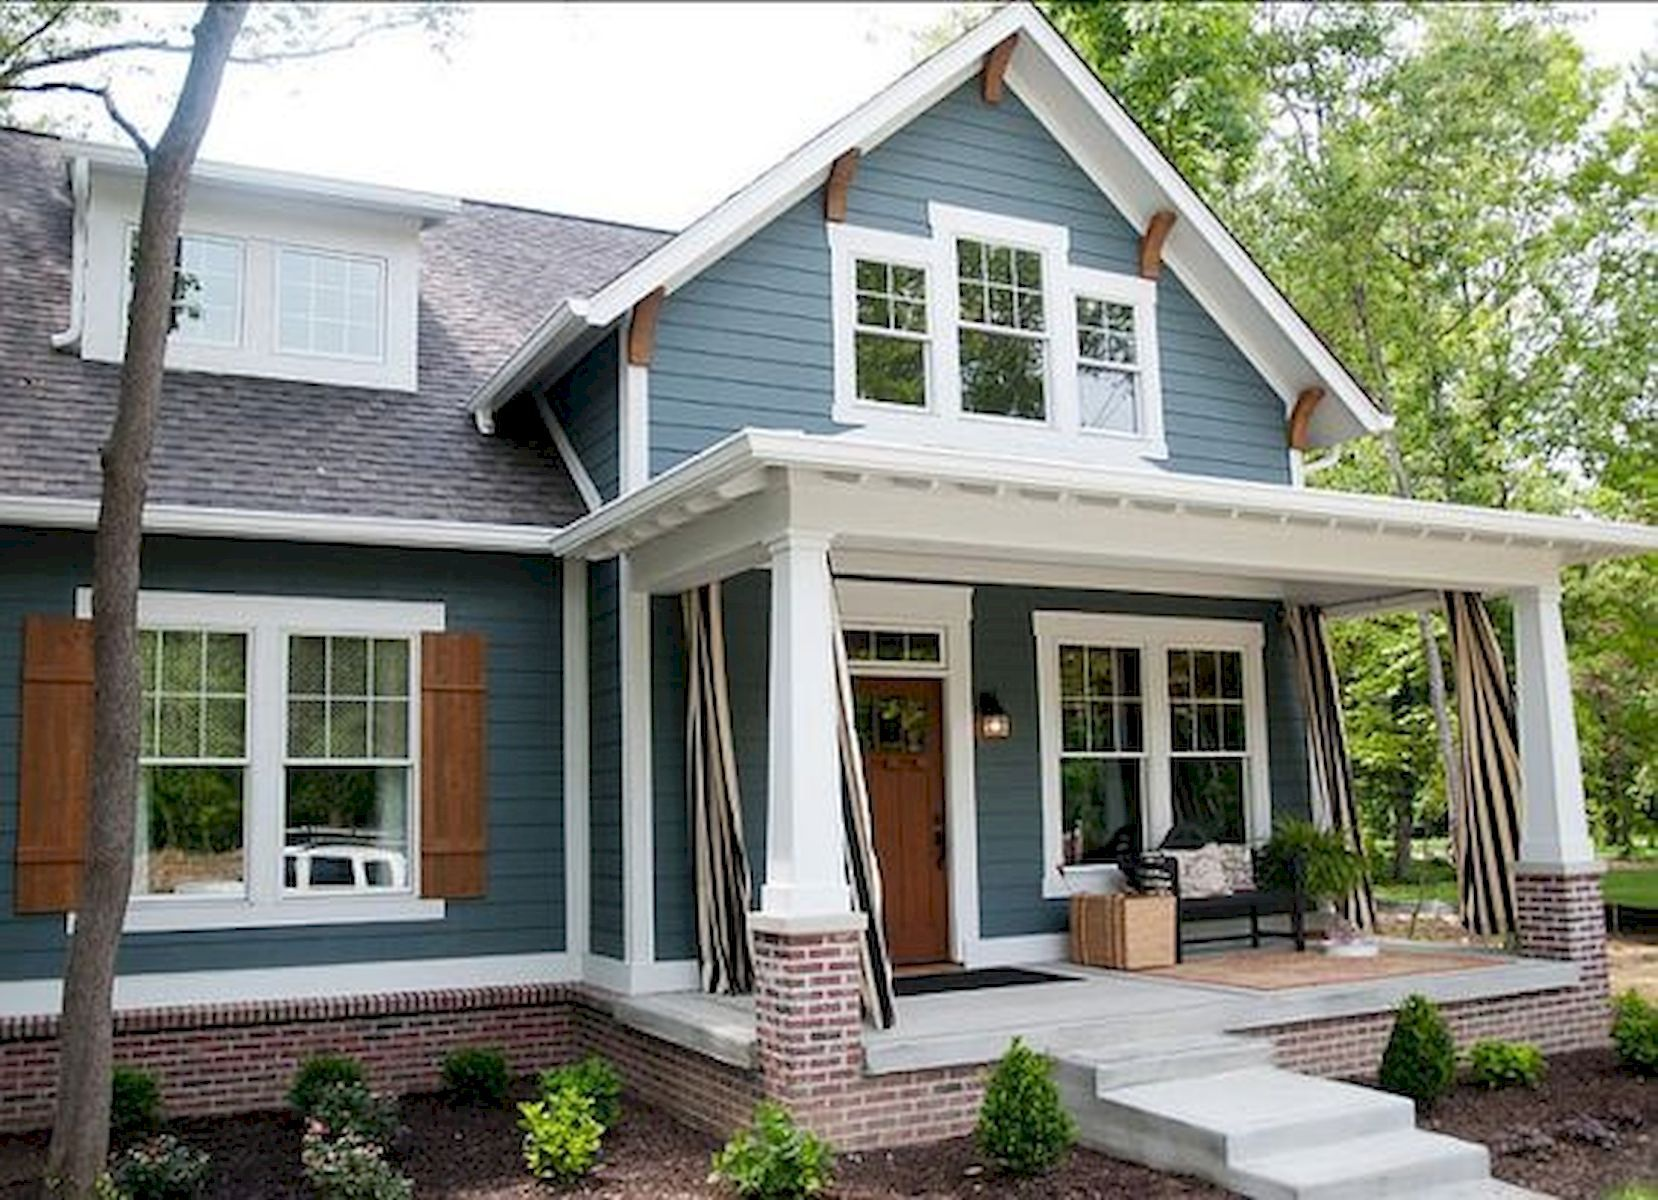 Awesome 20 Best 2019 Exterior House Trends Ideas Https Coachdecor Com 20 Best 2019 Exterior House Tr Exterior House Color House Paint Exterior House Exterior